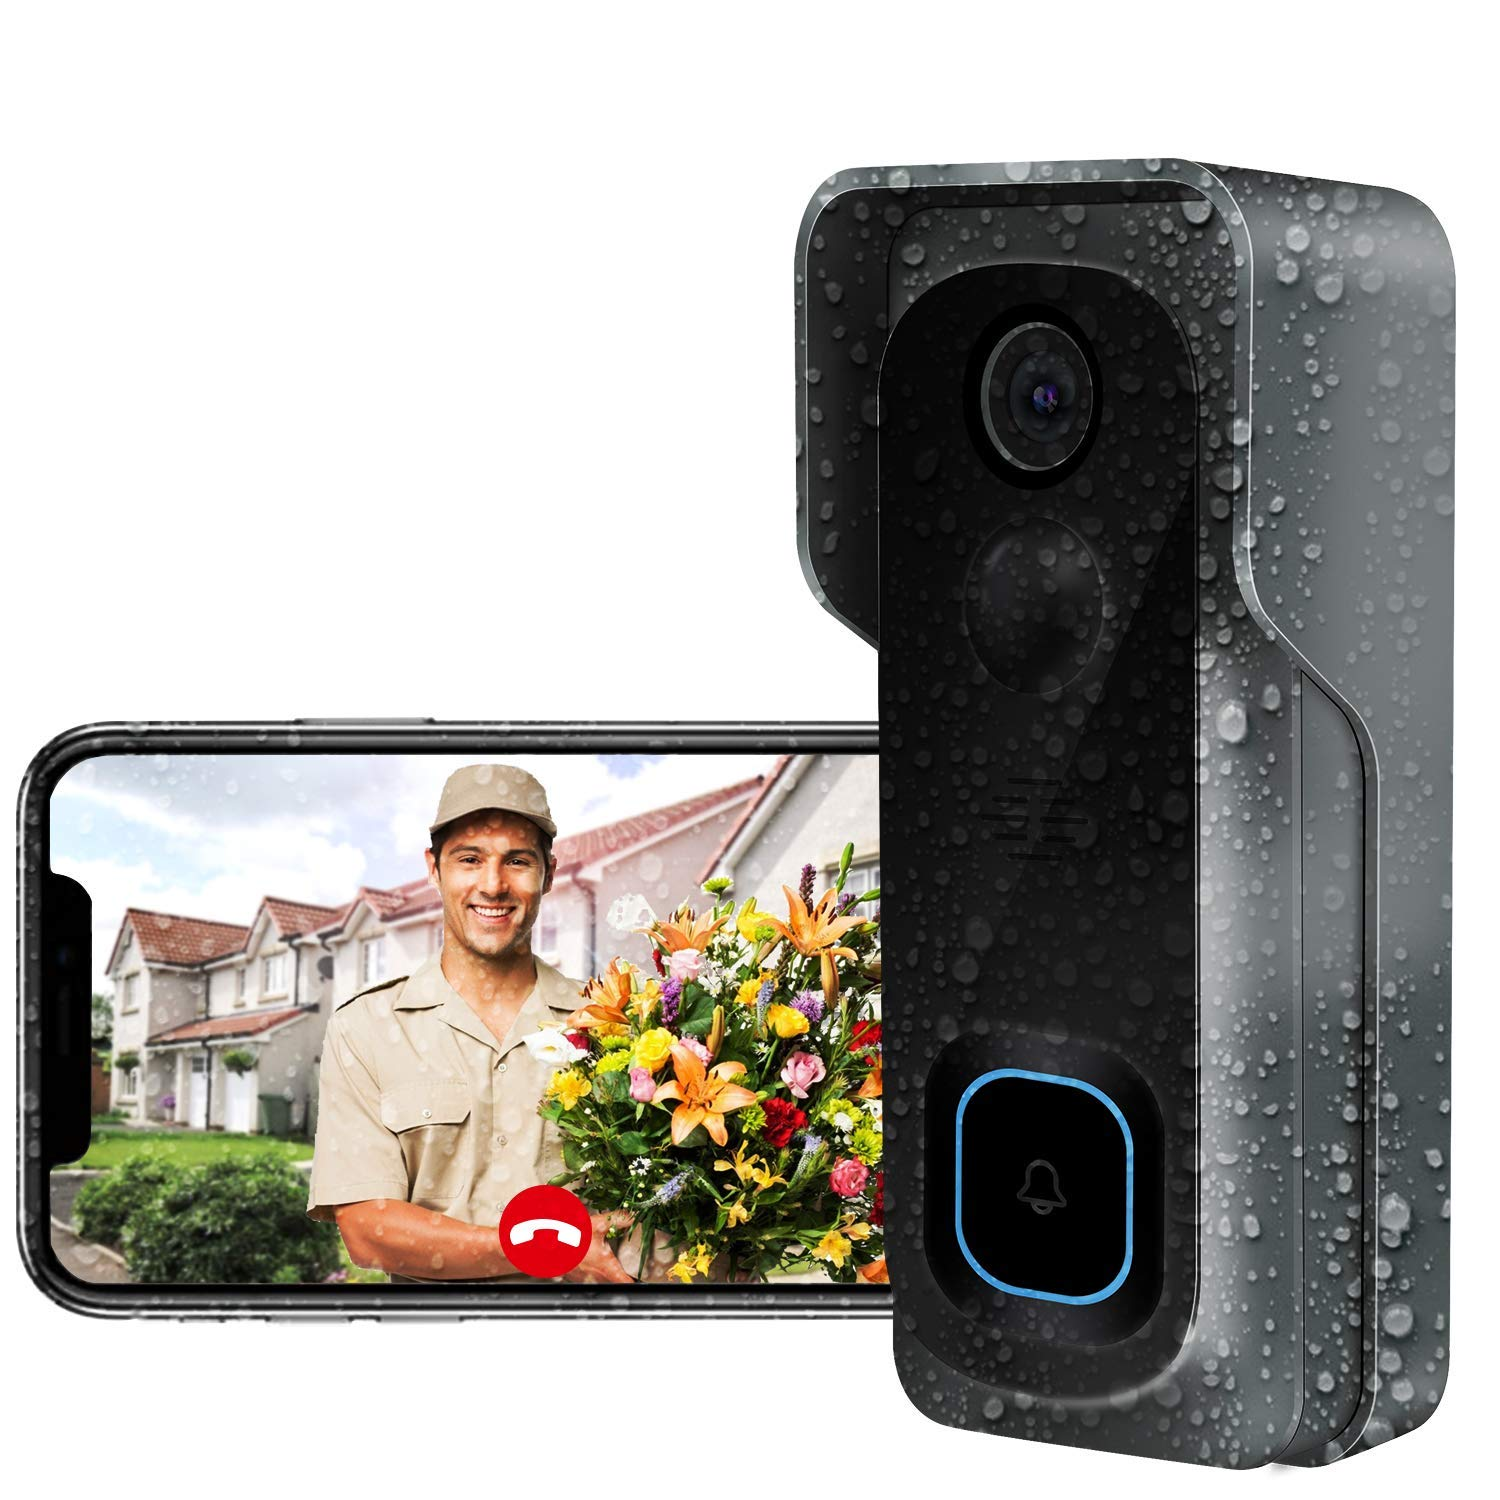 Doorbell Camera Wi-Fi with Motion Detector/Waterproof Video Doorbell/Free Chime/16GB Micro SD Card Included/Night Vision/166°Wide Angle/Two-Way Audio(AWOW J1) by AWOW